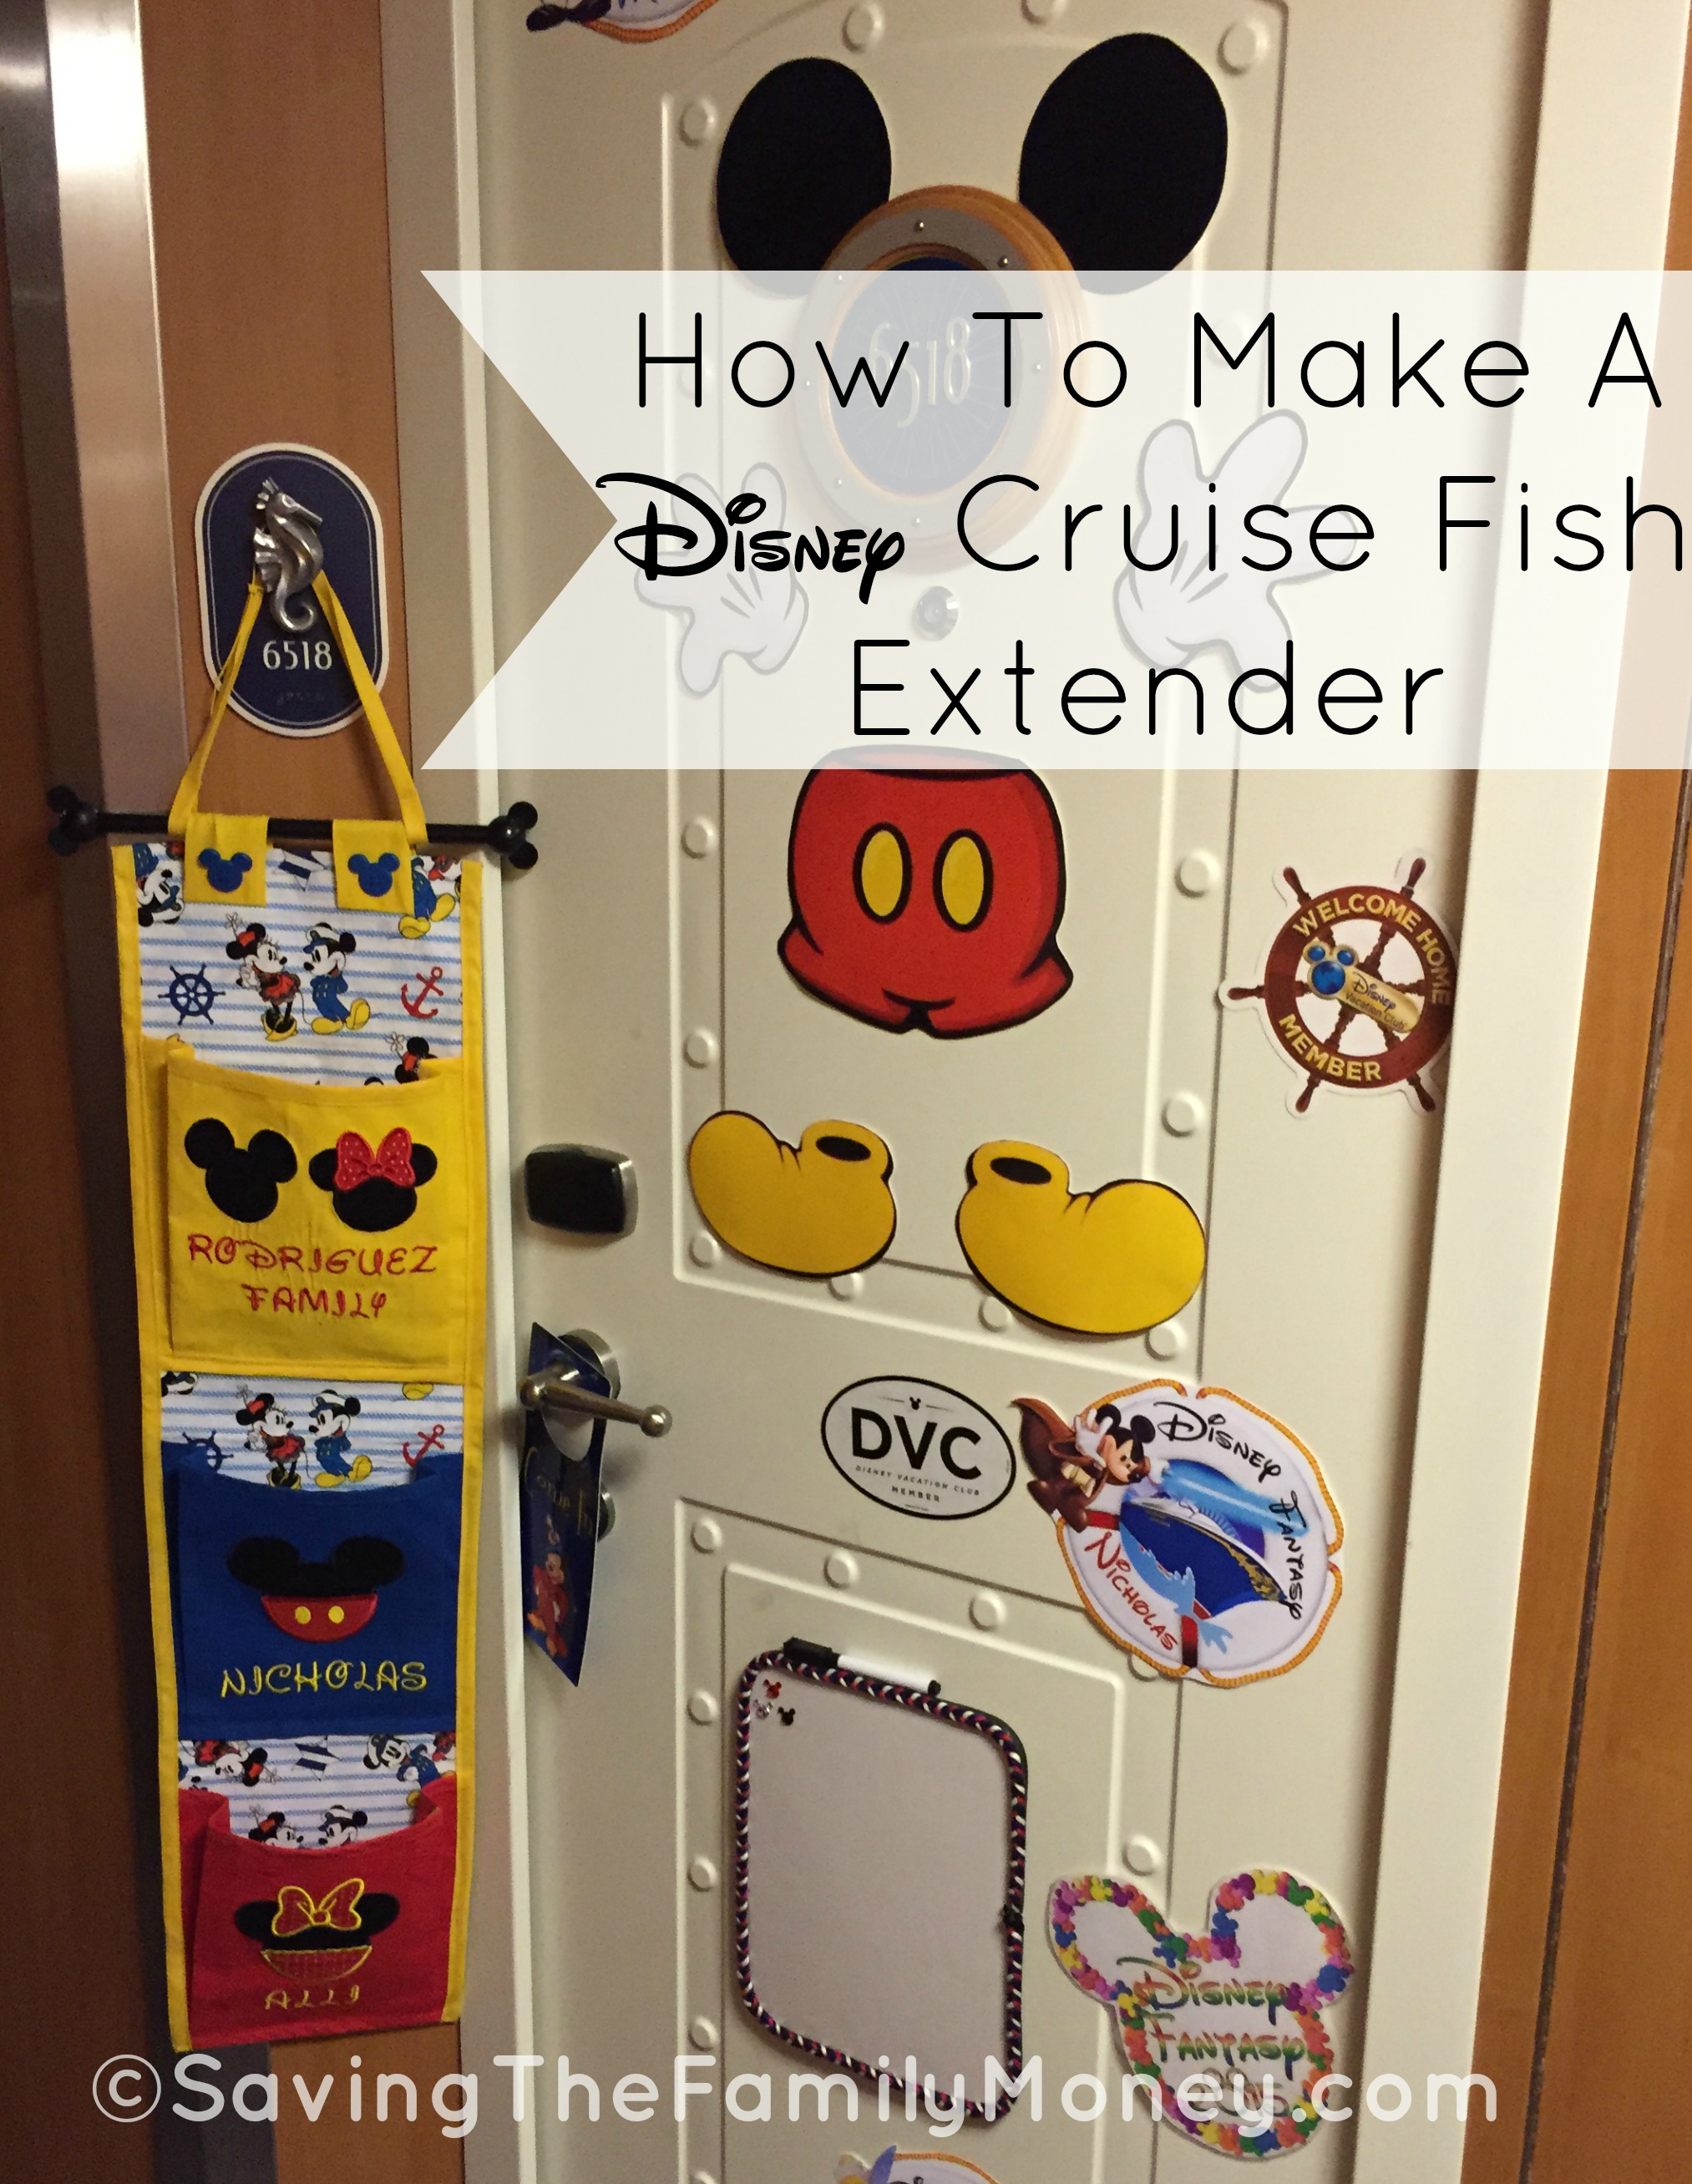 How To Make A Disney Cruise Fish Extender Saving The